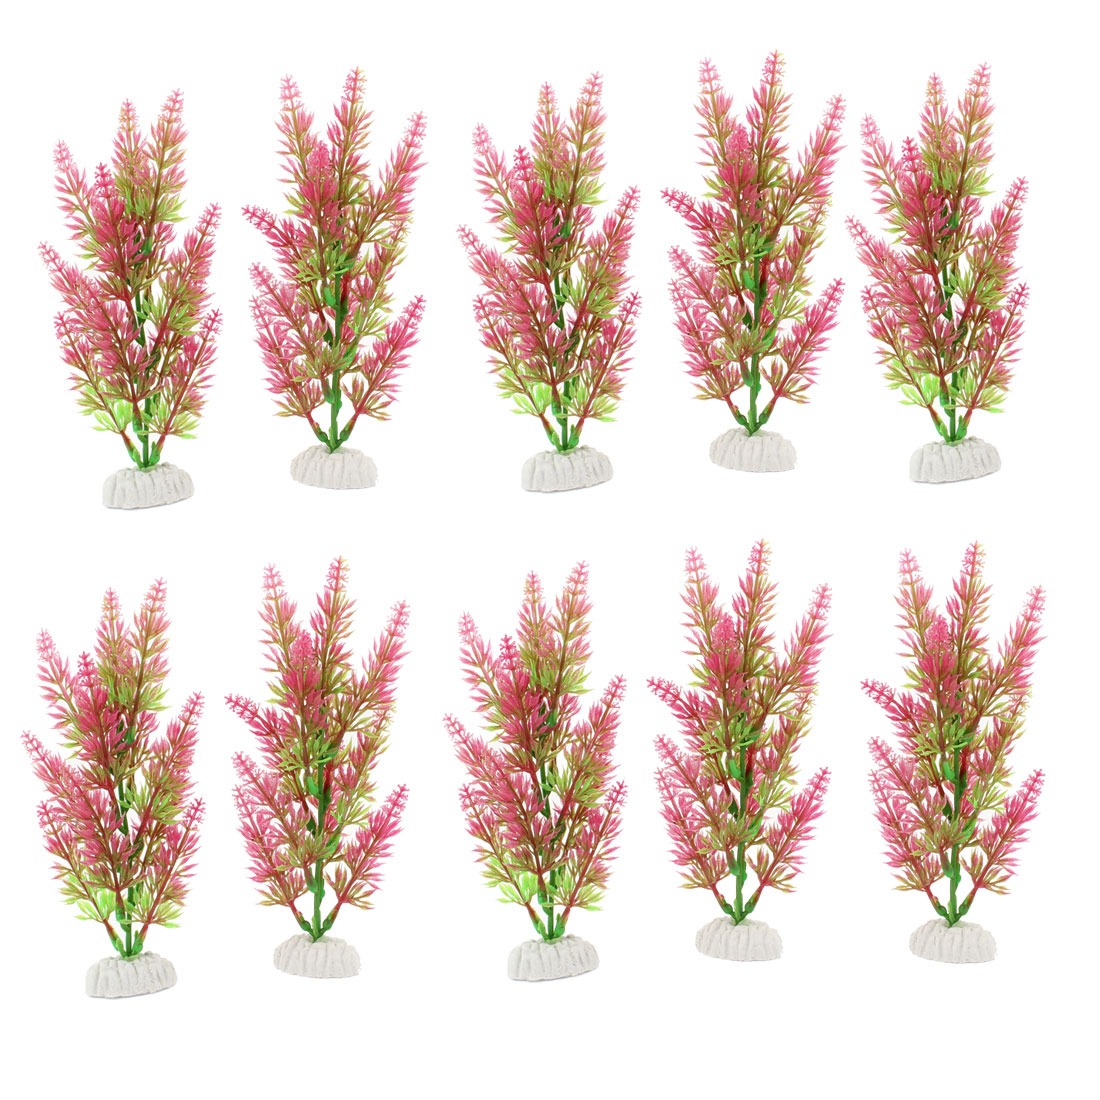 "10 Pcs 7.7"" Height Ceramic Base Green Hot Pink Manmade Plant for Fish Tank"